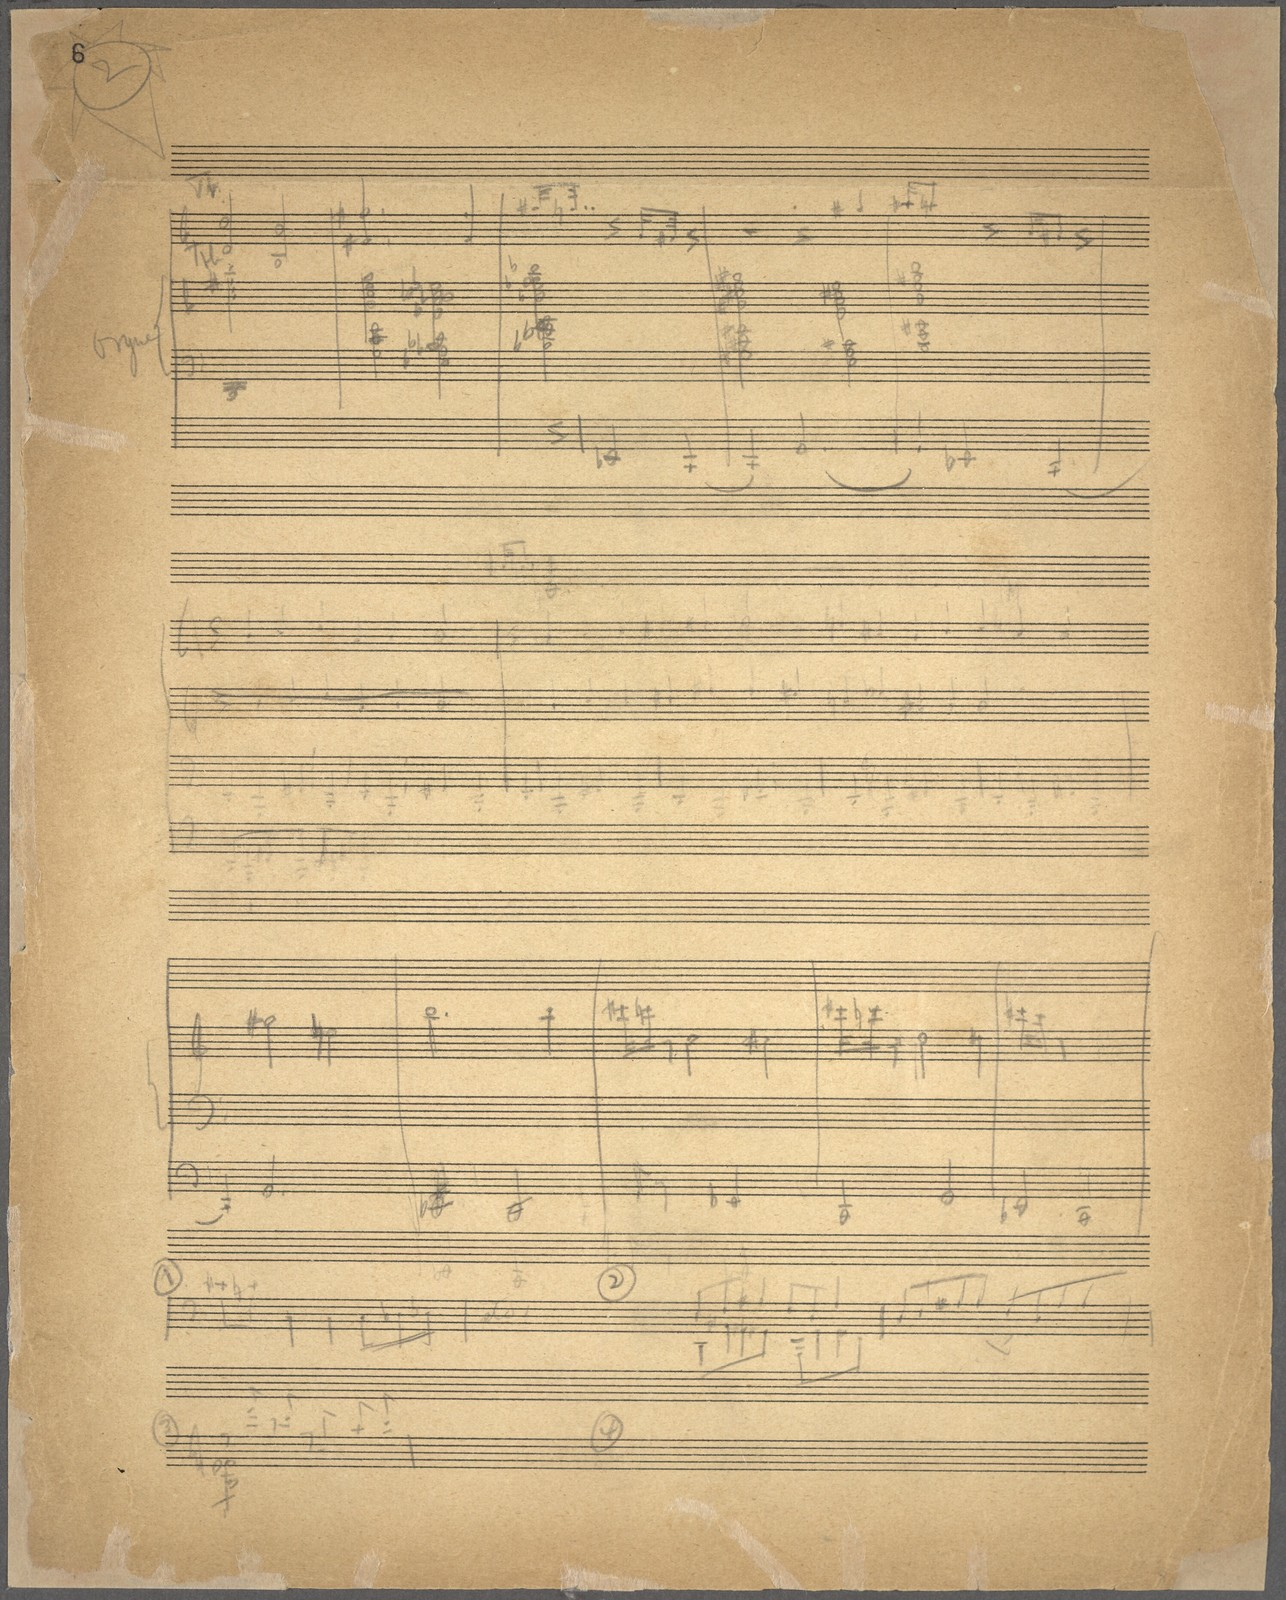 Symphony for organ and orchestra [rough sketches]